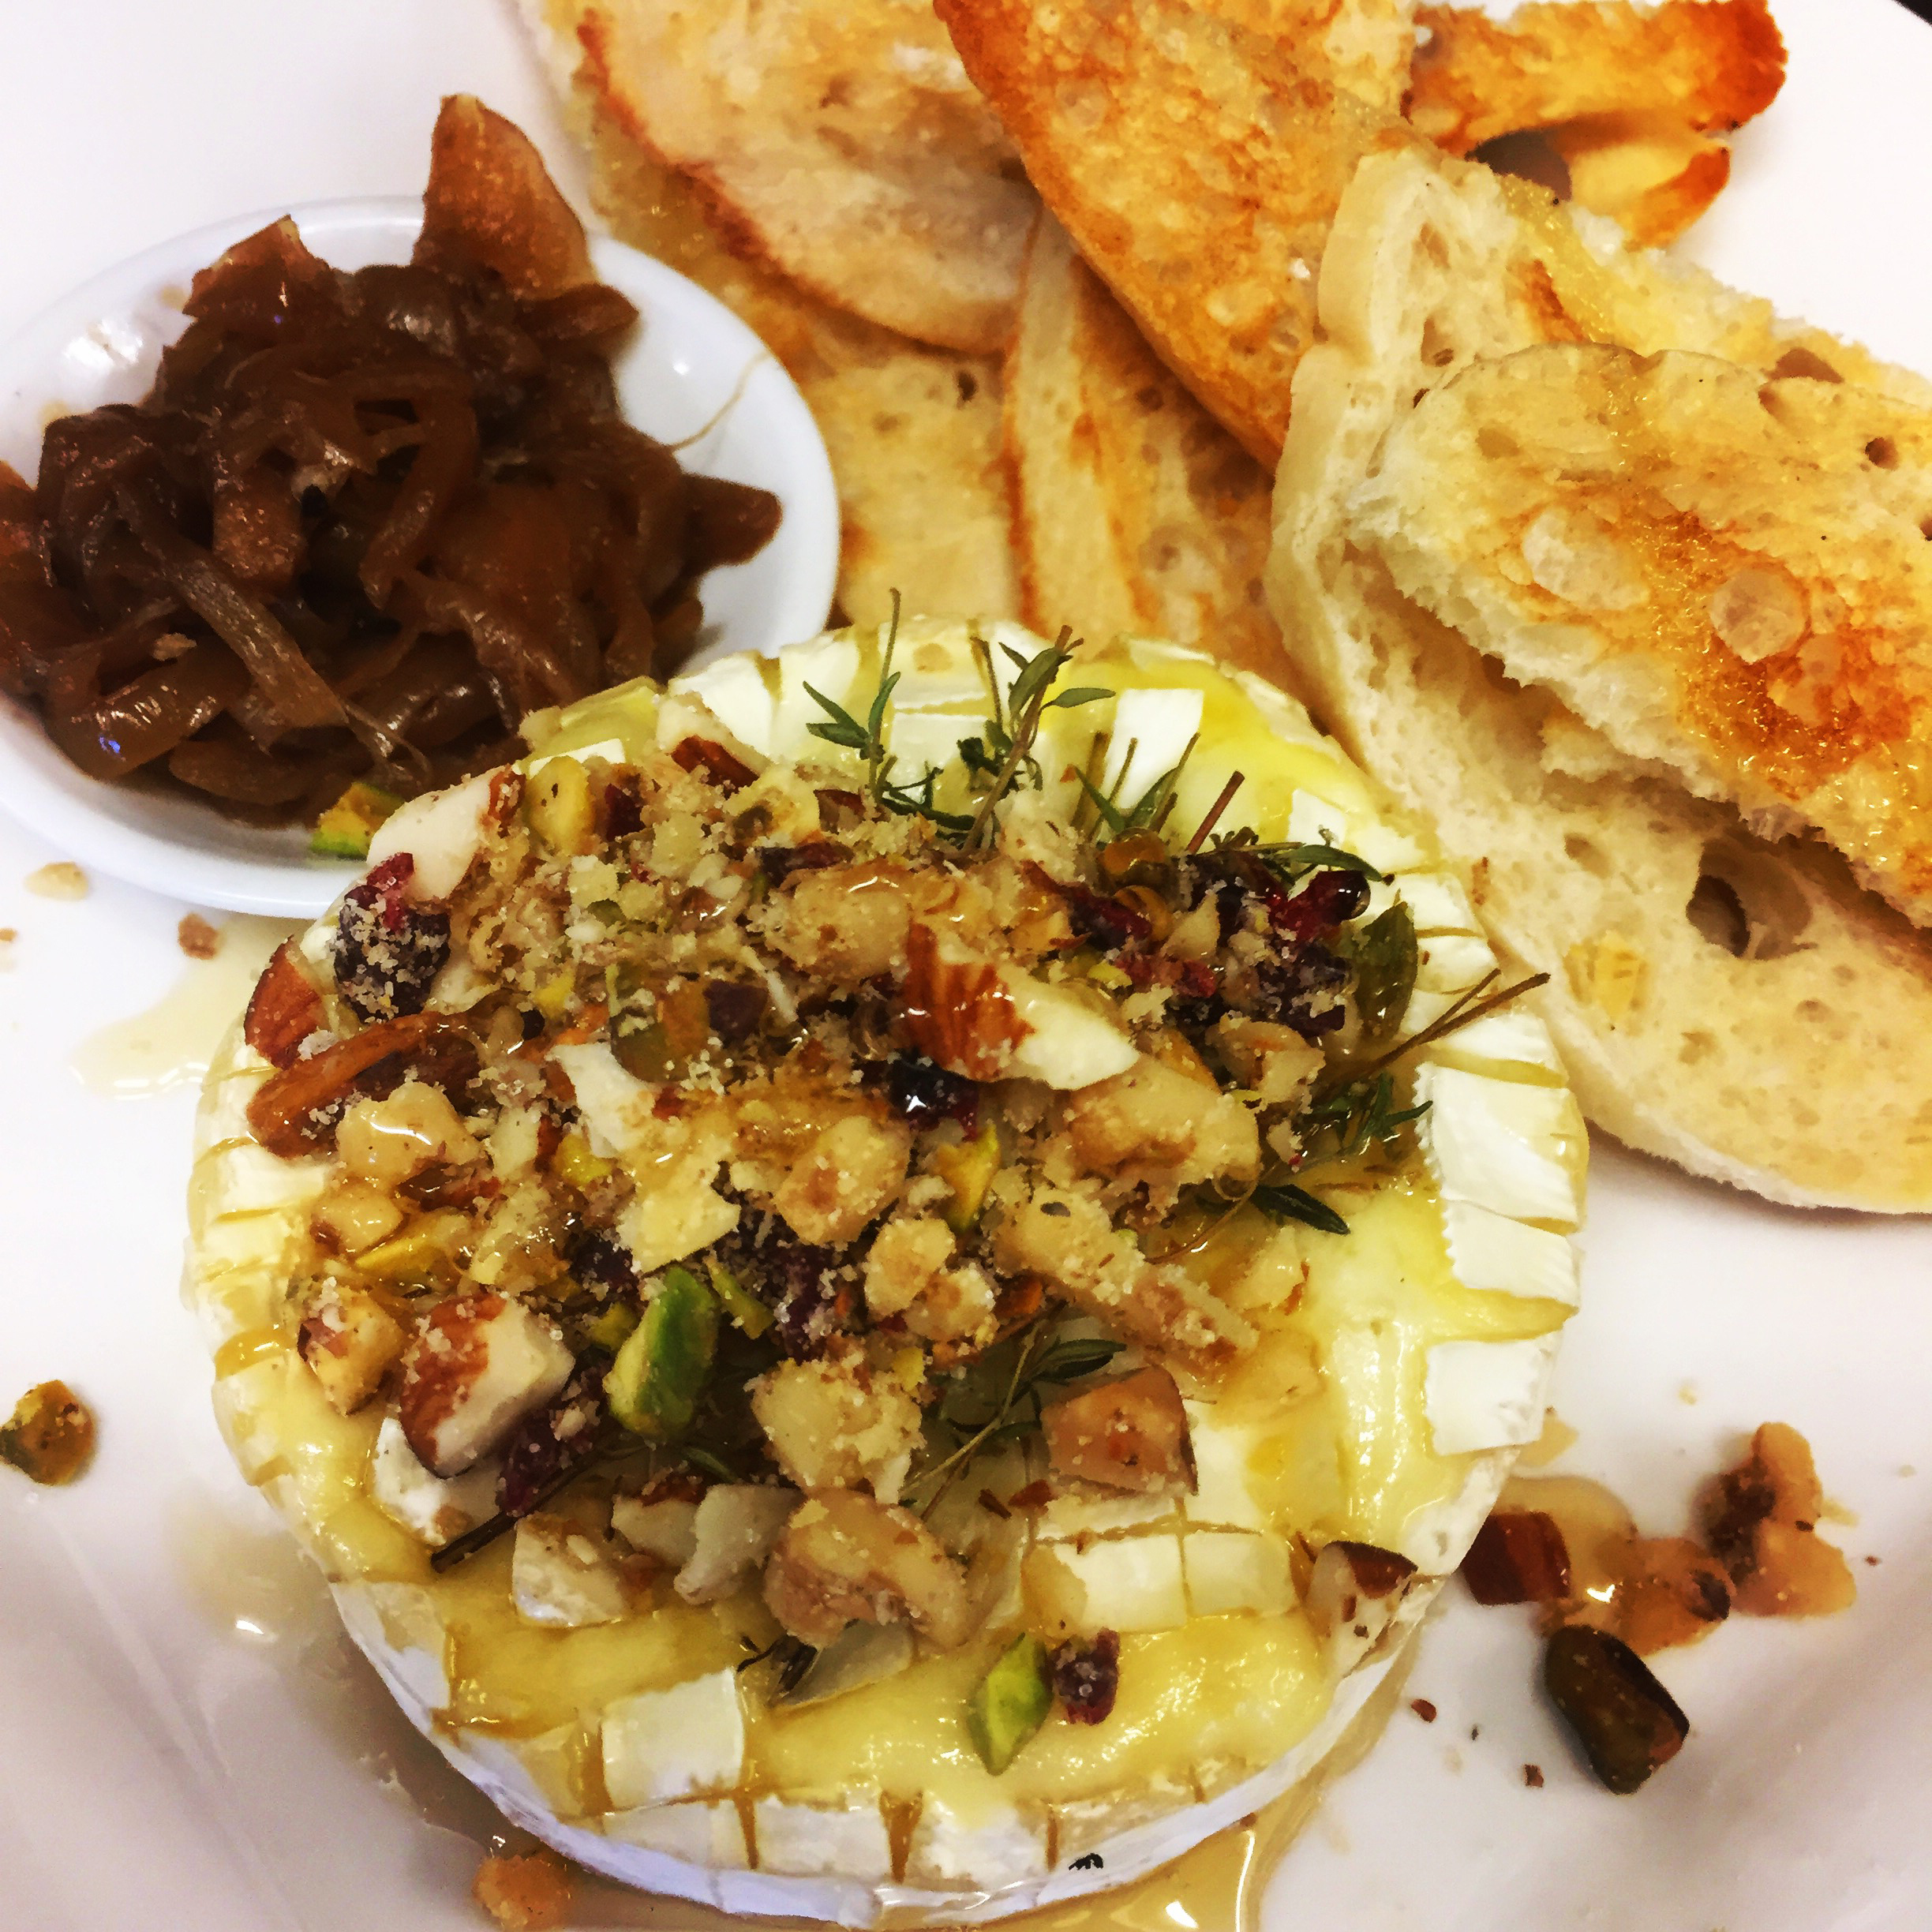 Baked Camembert - topped with a walnut, almond, cranberry, pistachio nut crumble, served with caramelised onion jam and toast